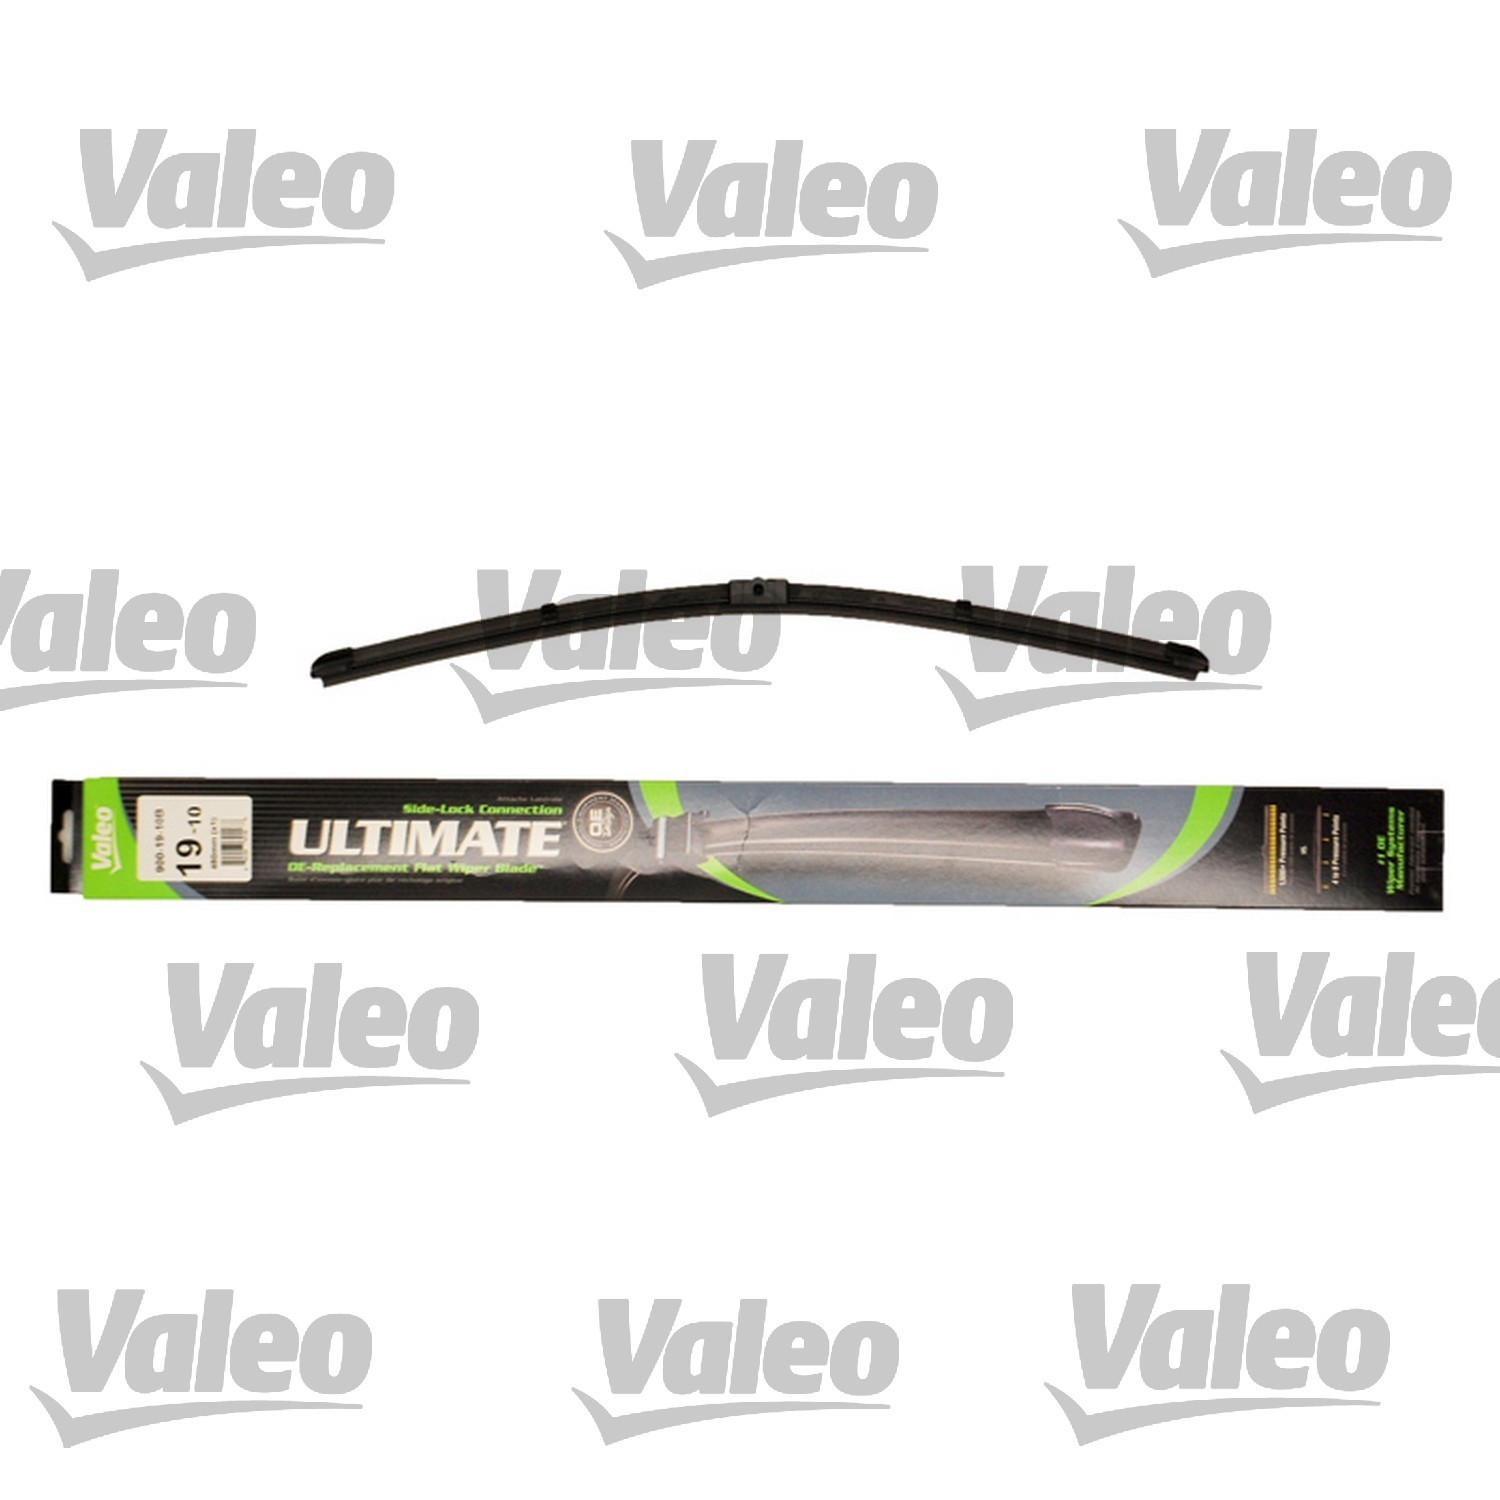 VALEO - Ultimate Wiper Blade - VEO 900-19-10B